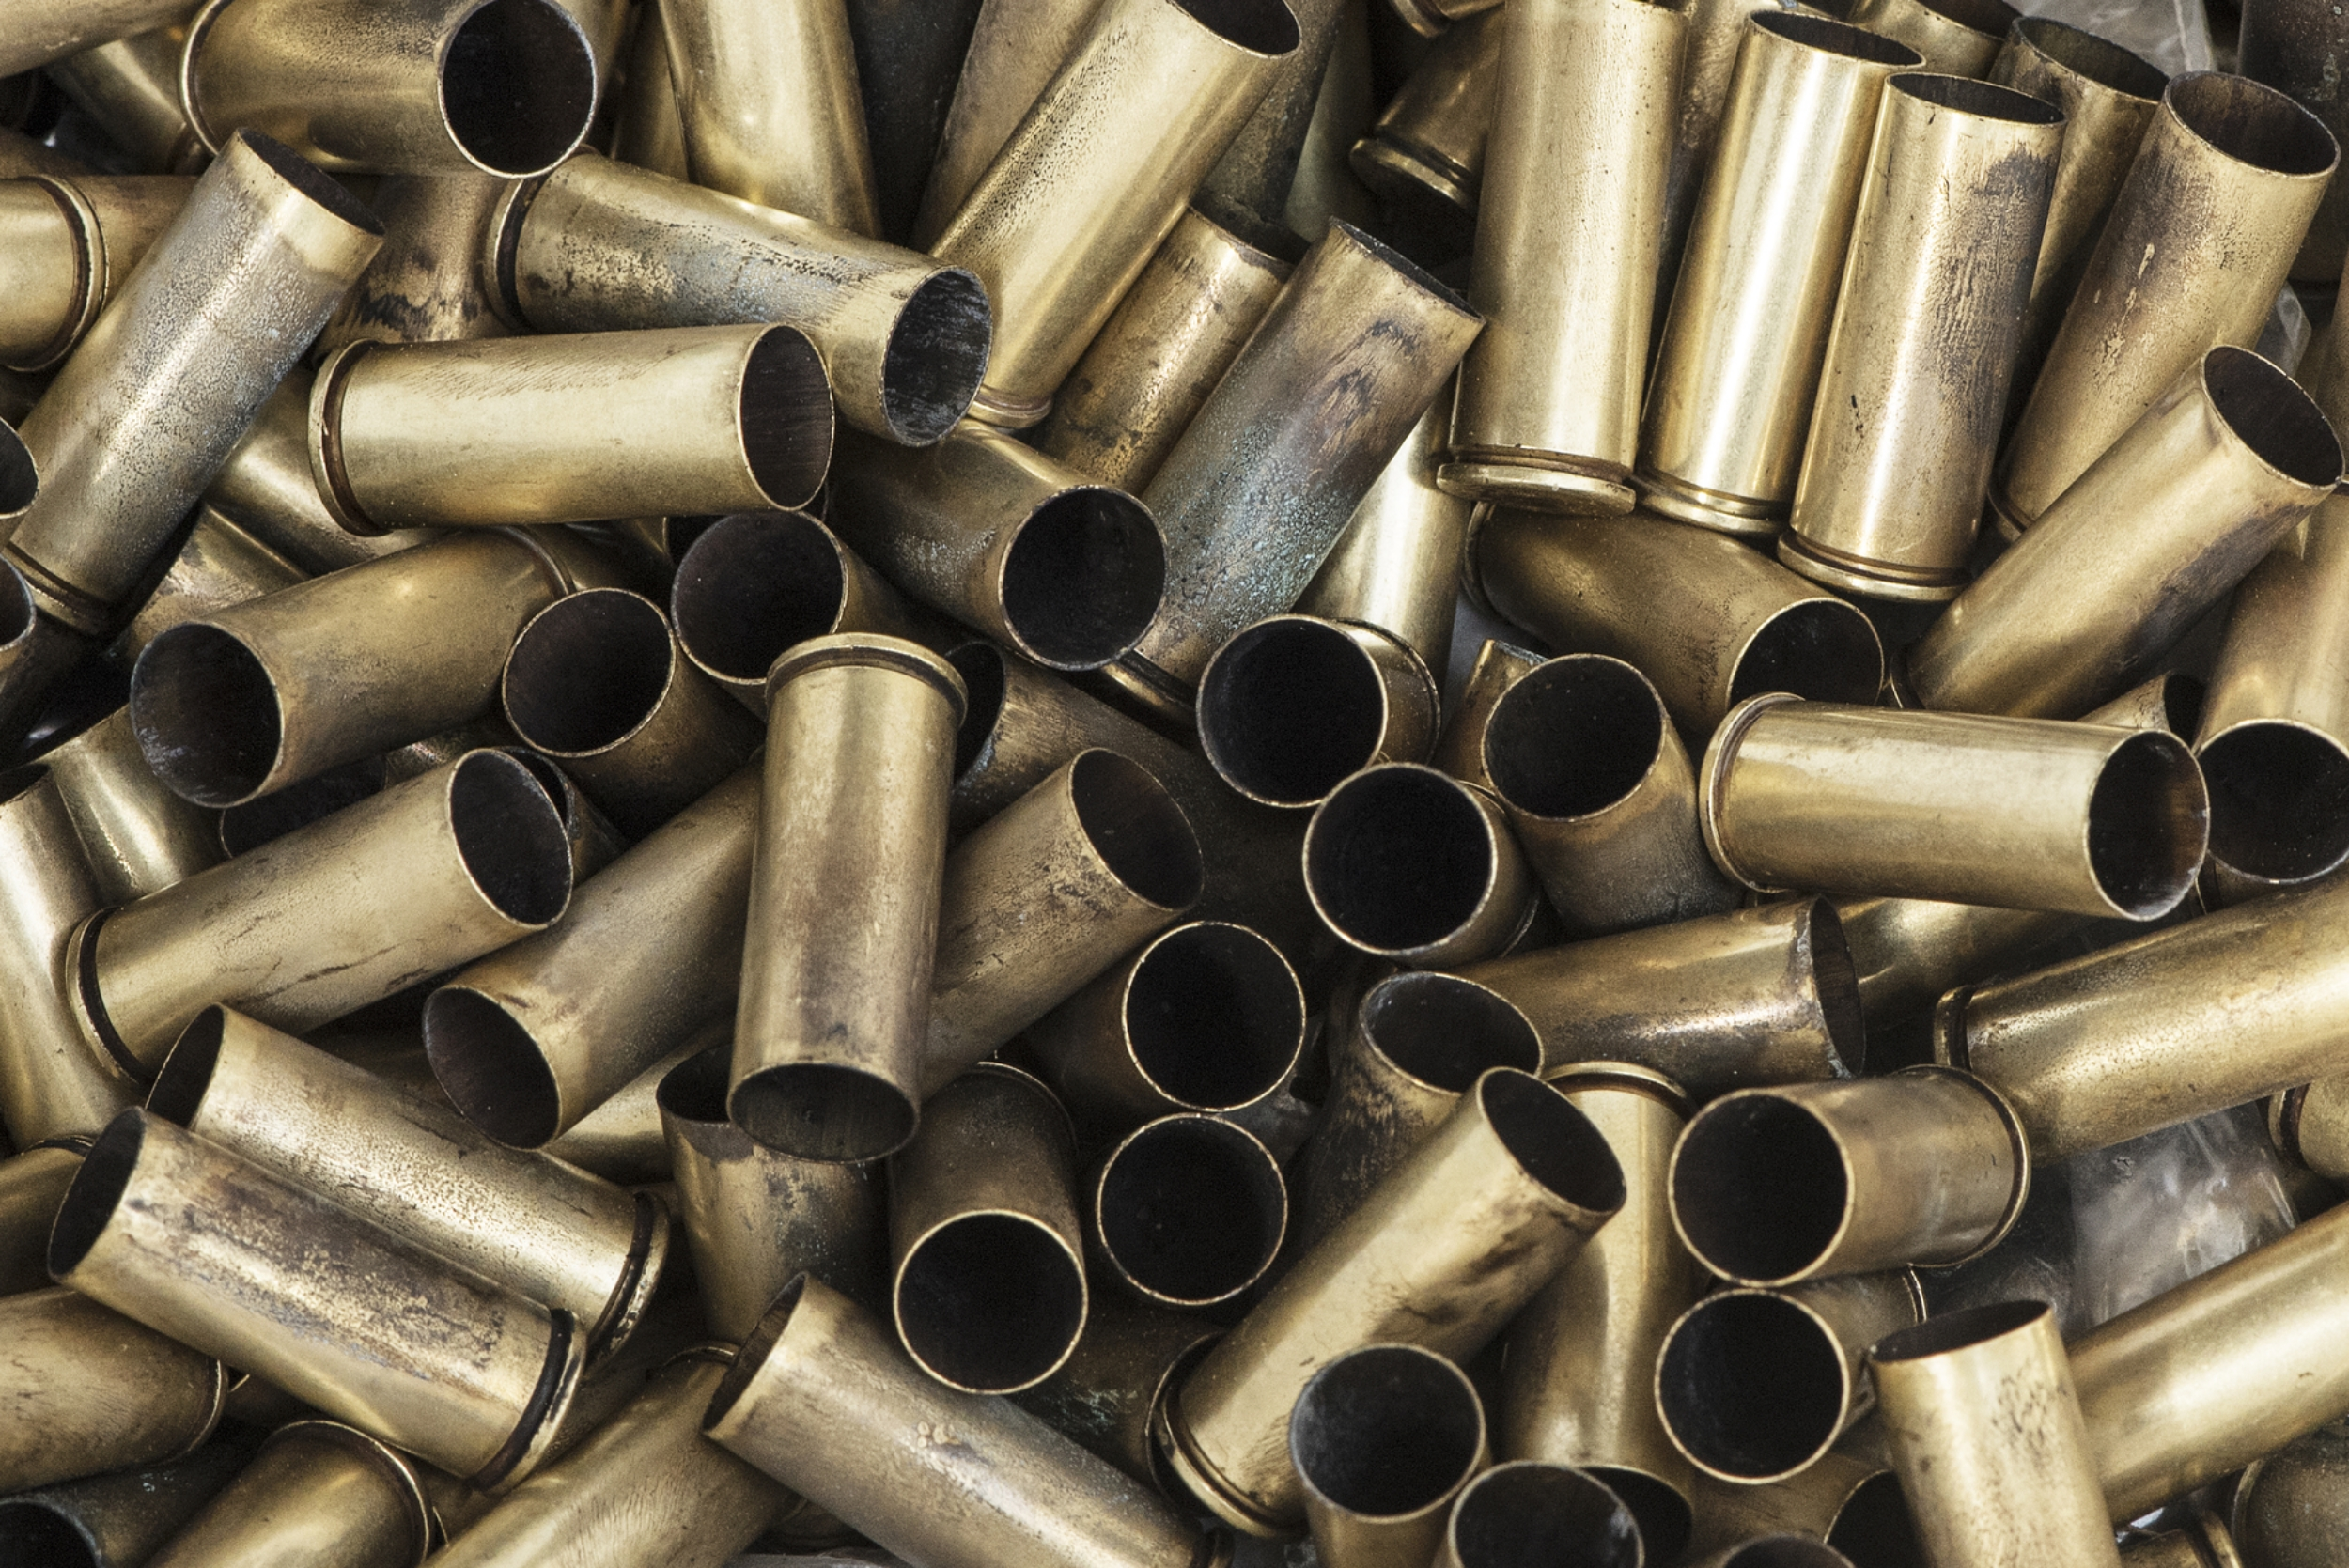 The blank ammunition used in cowboy mounted shooting is called .45 caliber Long Colt. The brass cartridge is loaded with black powder, similar to the 1800s.